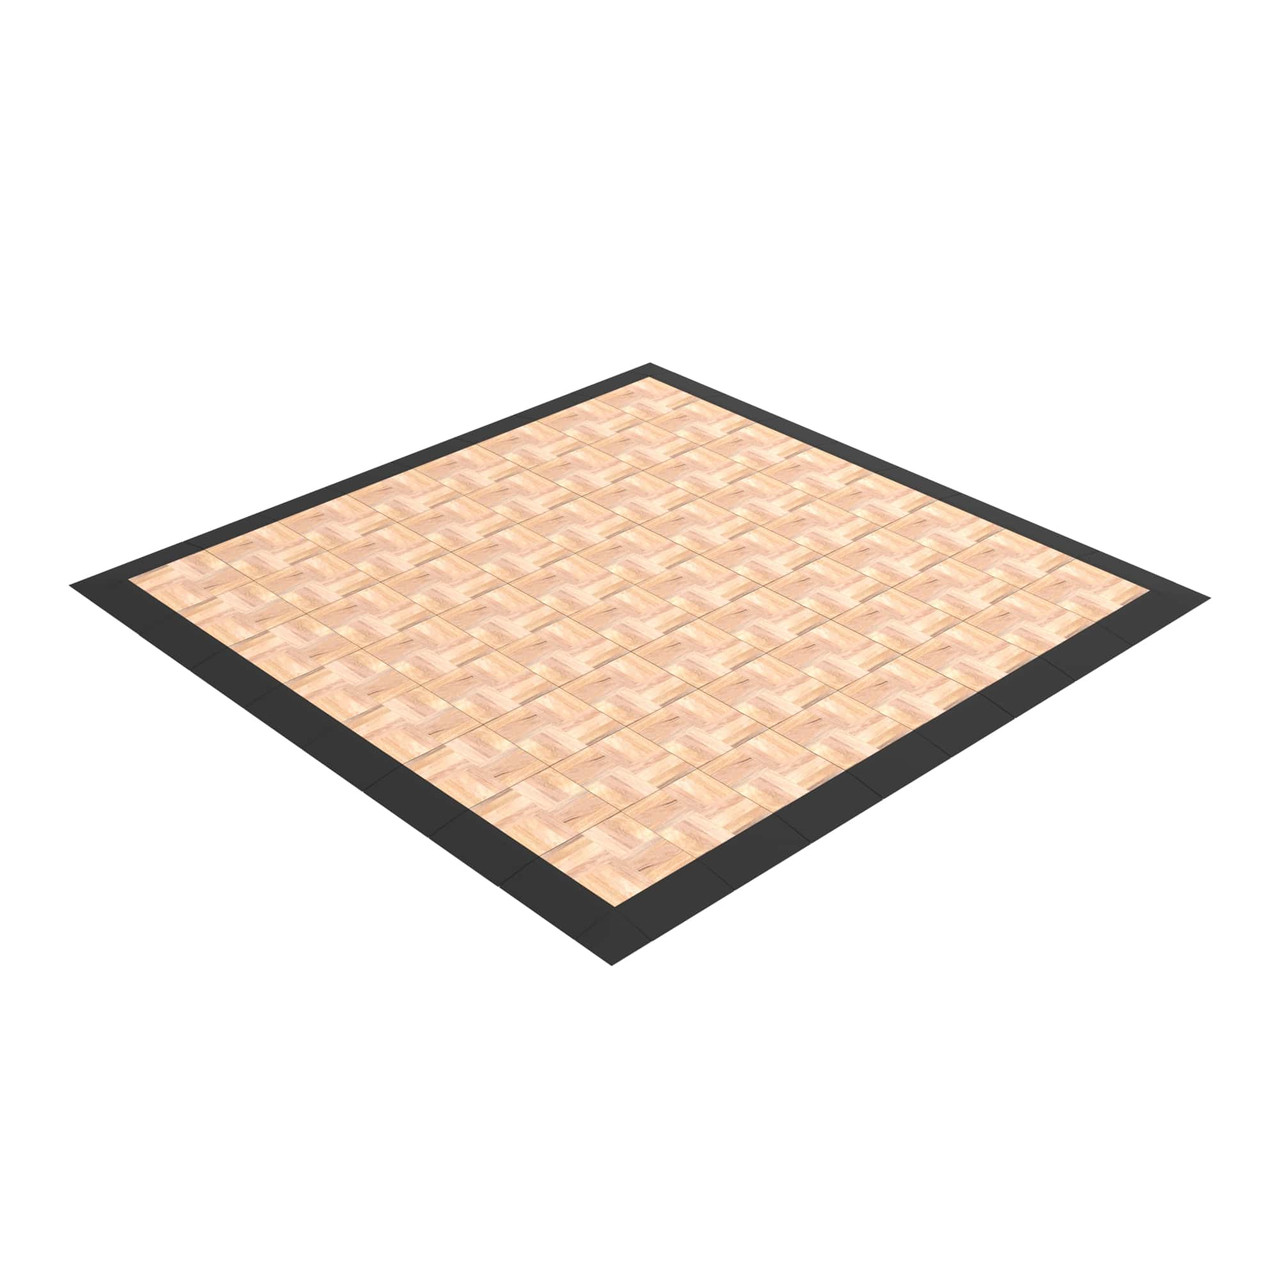 The 8' x 8' EverDance Floor Kit can get bigger and bigger, just add more tiles to it!